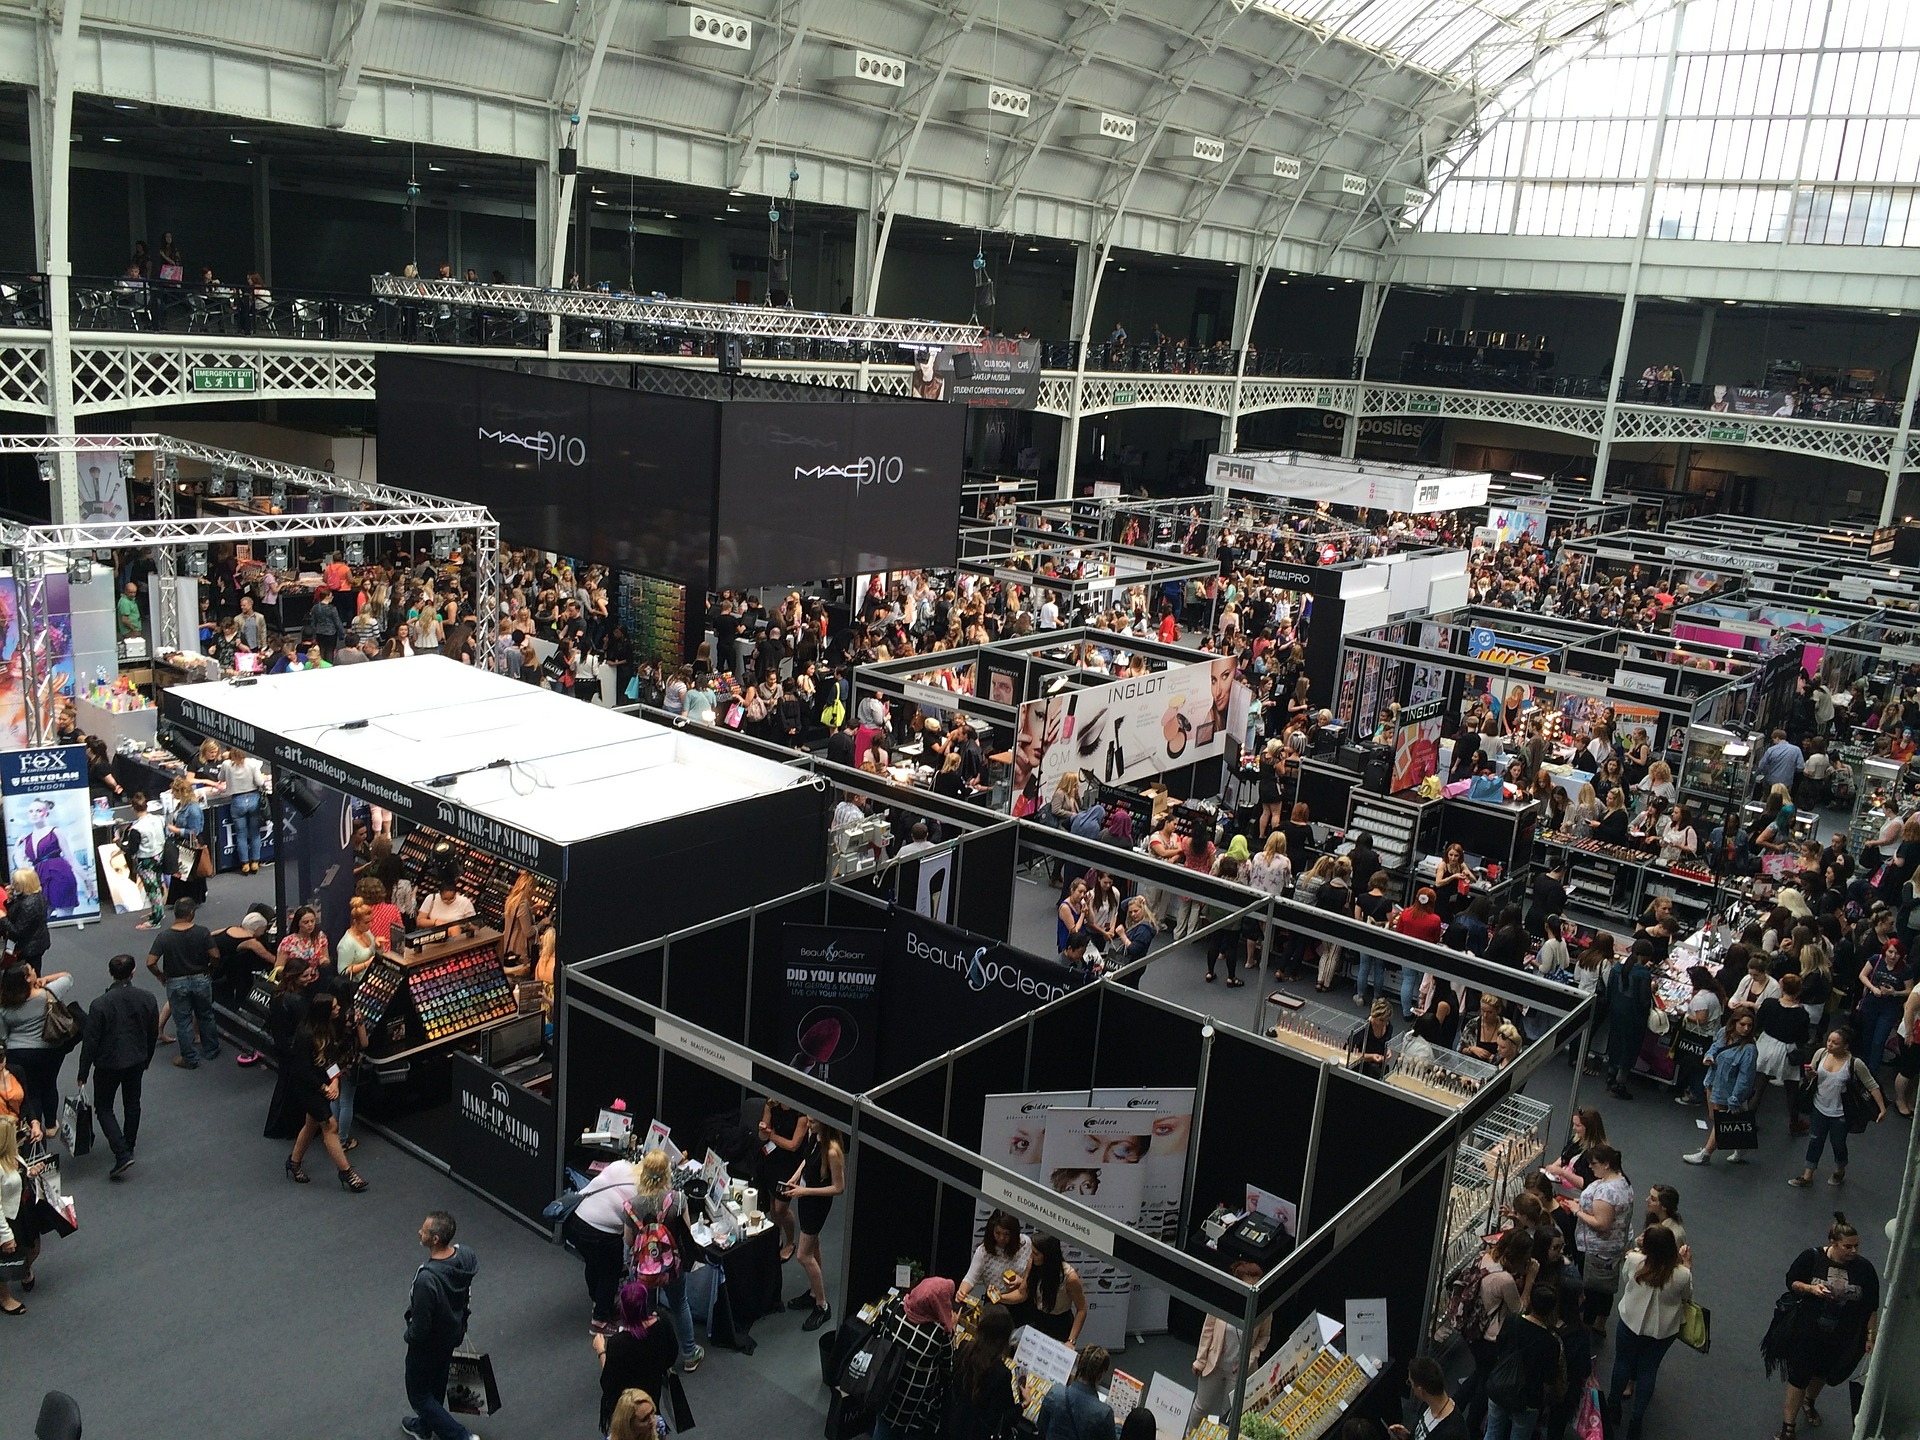 5 Irresistible Ideas for Increasing Traffic at Your Tradeshow Booth